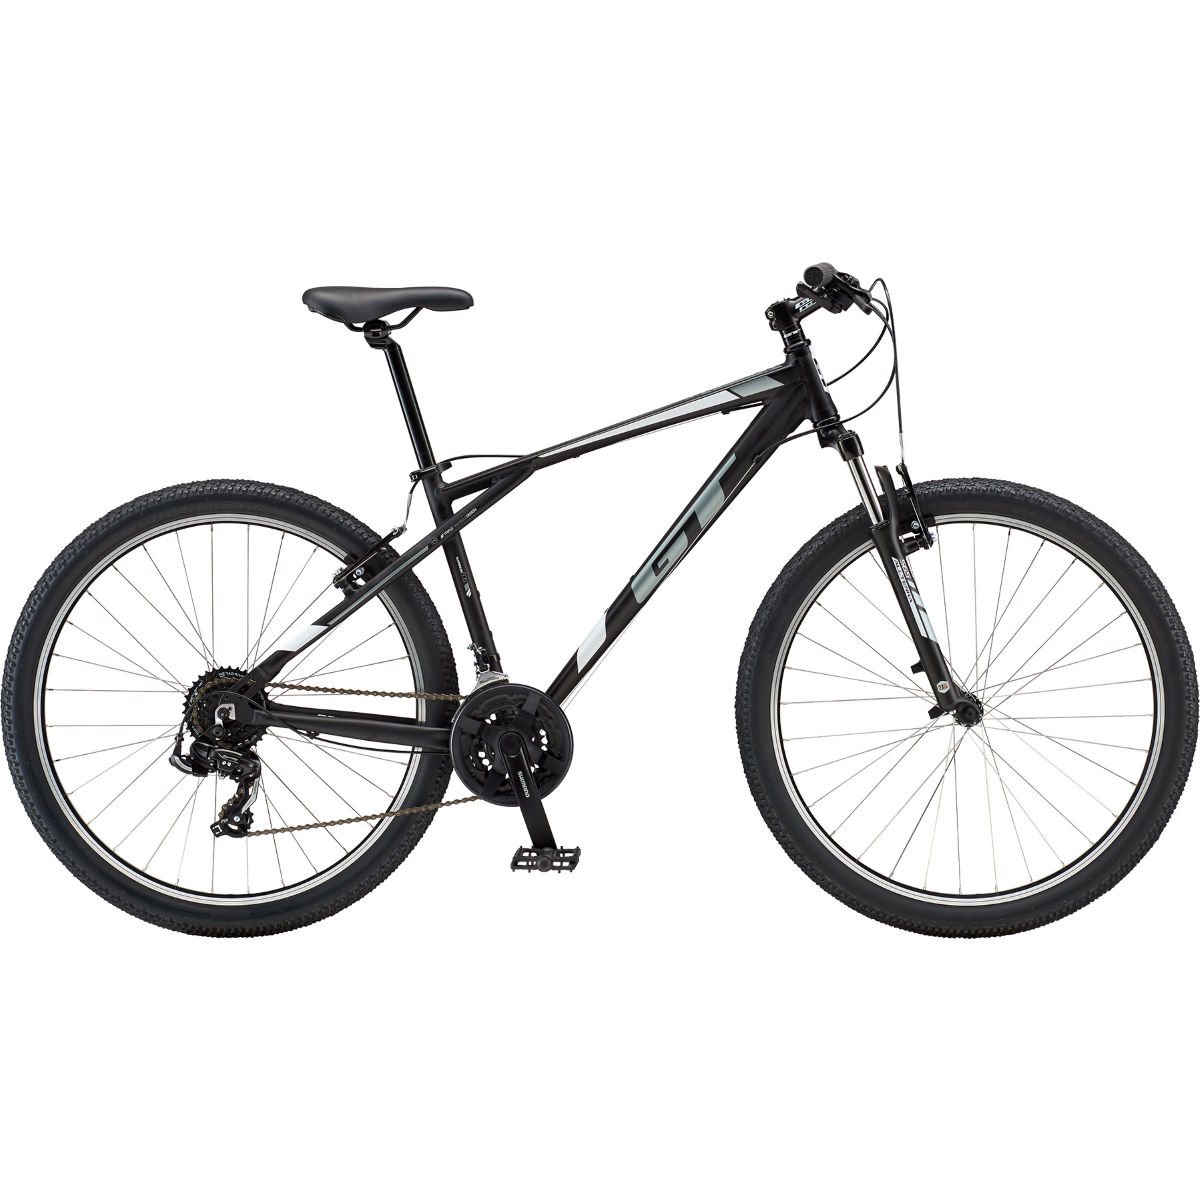 VTT semi-rigide GT Palomar Al 27.5 - Large Stock Bike Noir